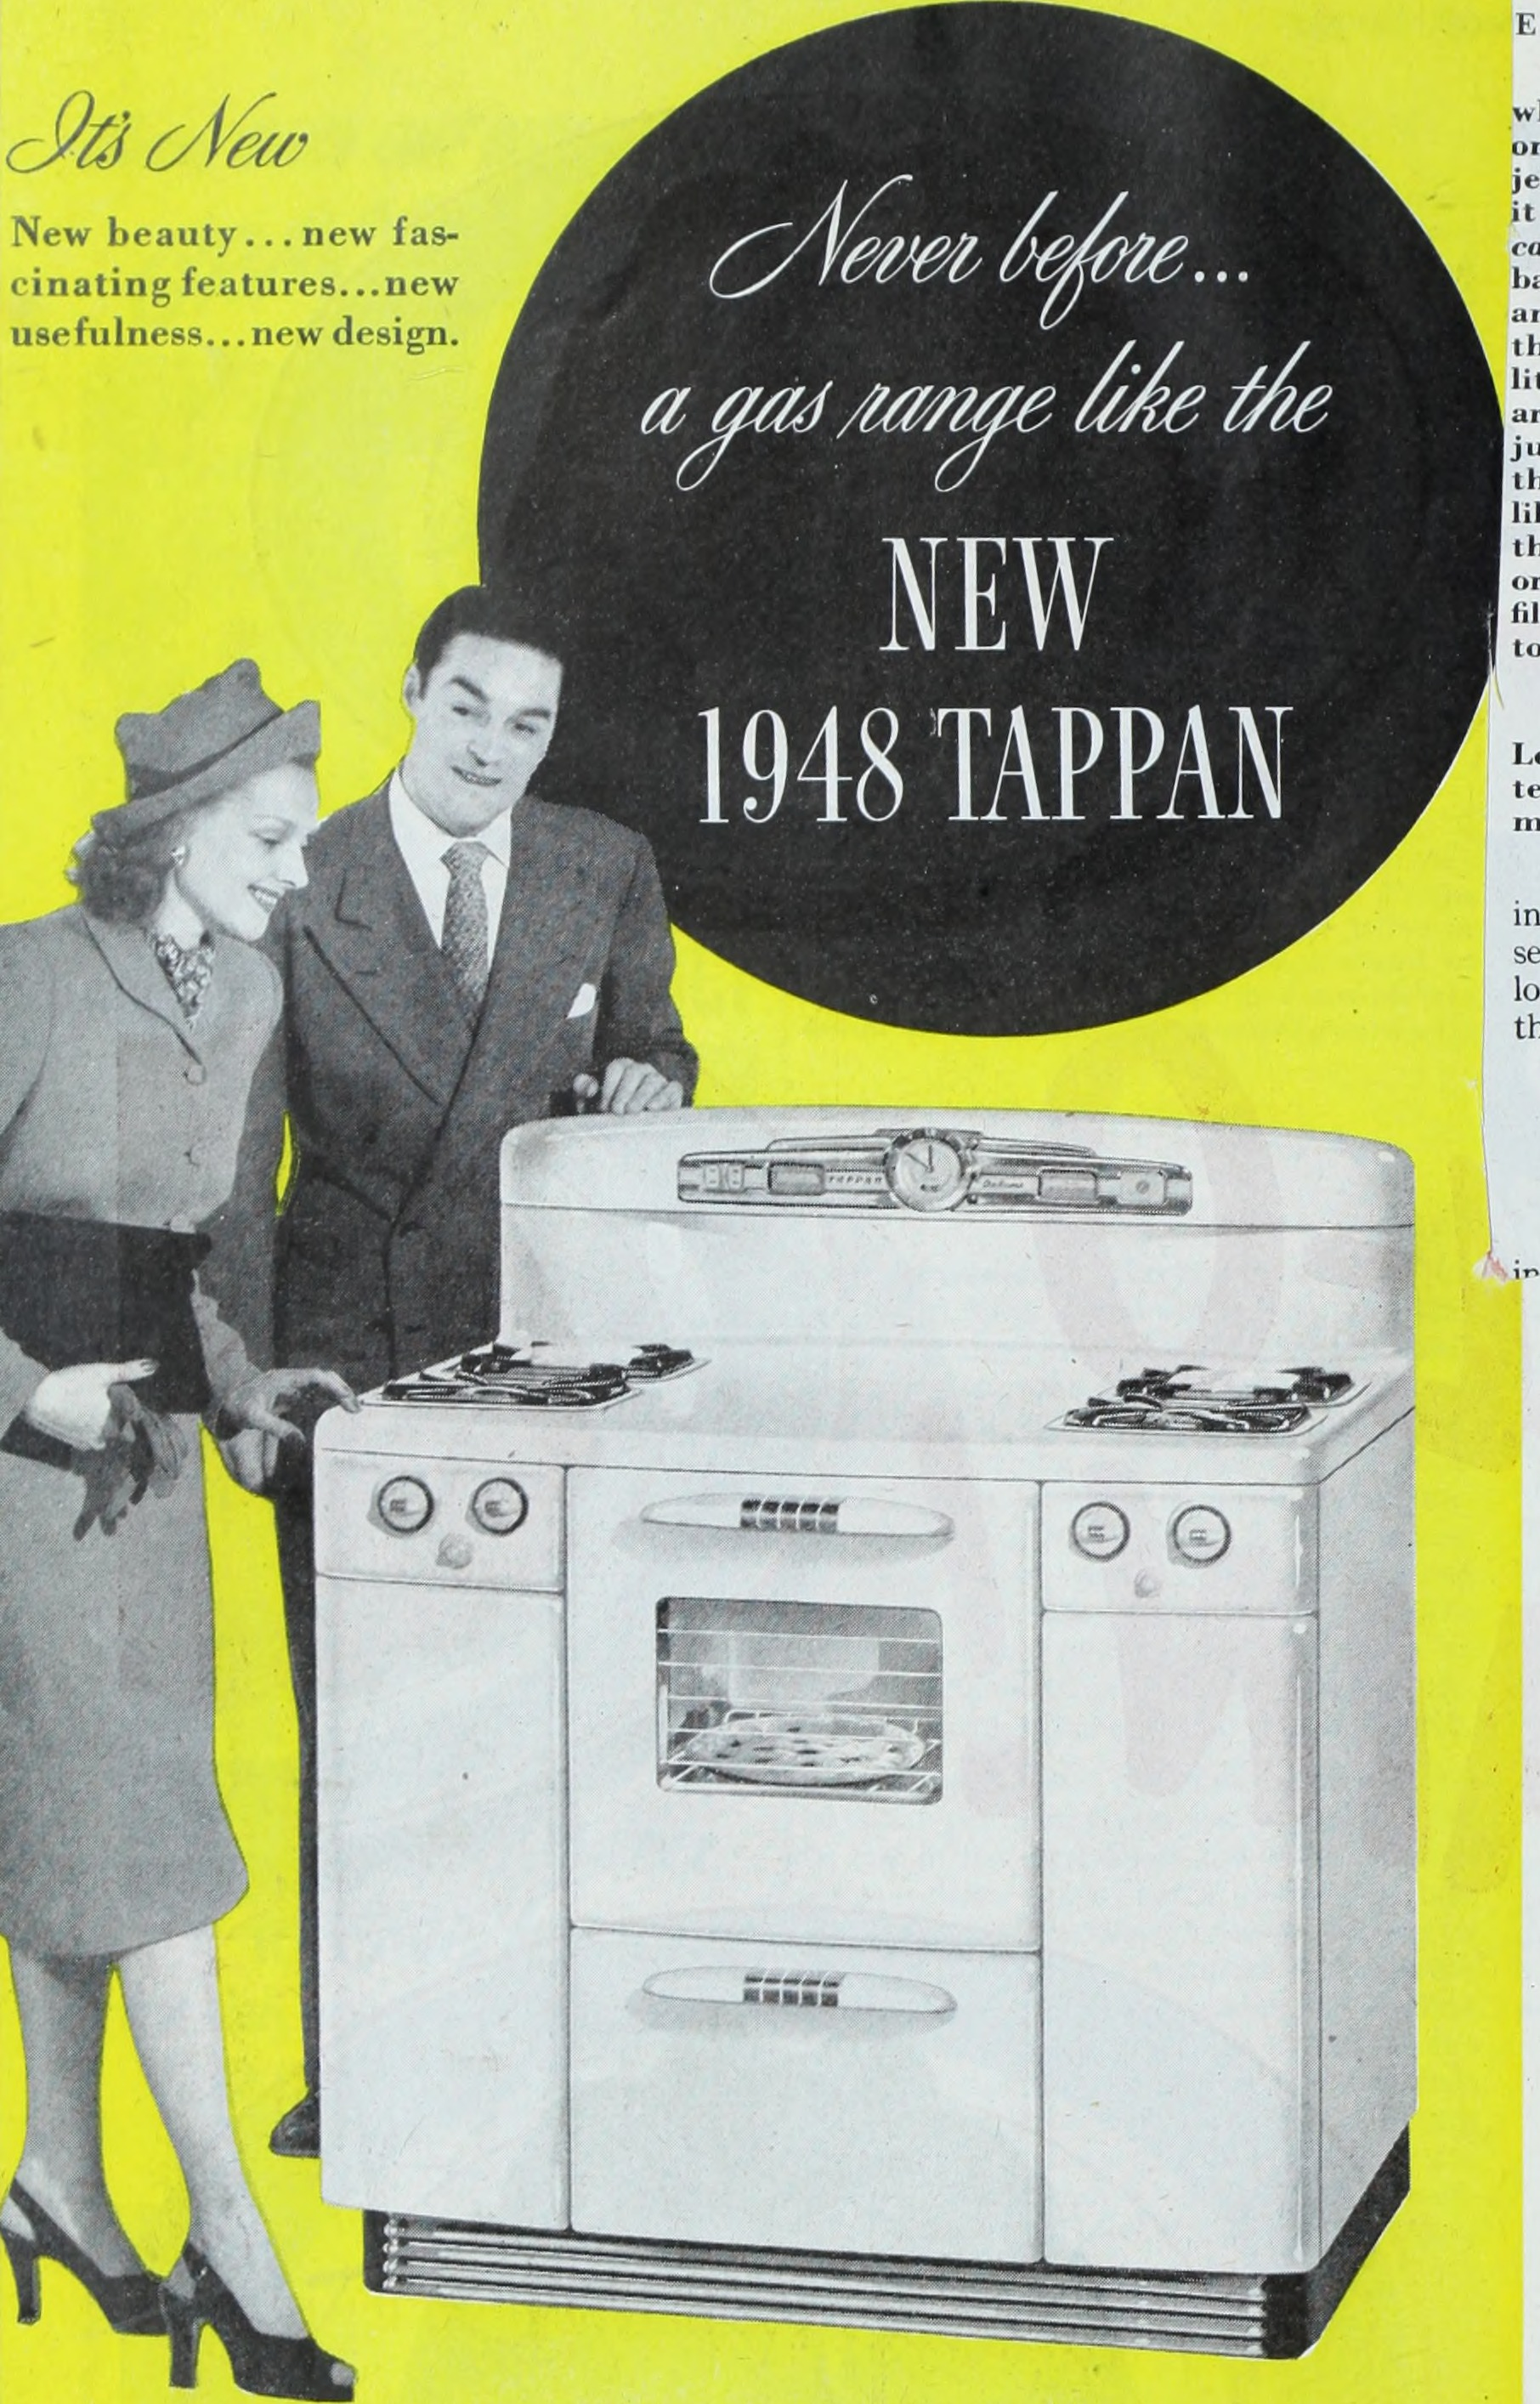 tappan gas oven wiring diagram for wall tappan  brand  wikipedia  tappan  brand  wikipedia